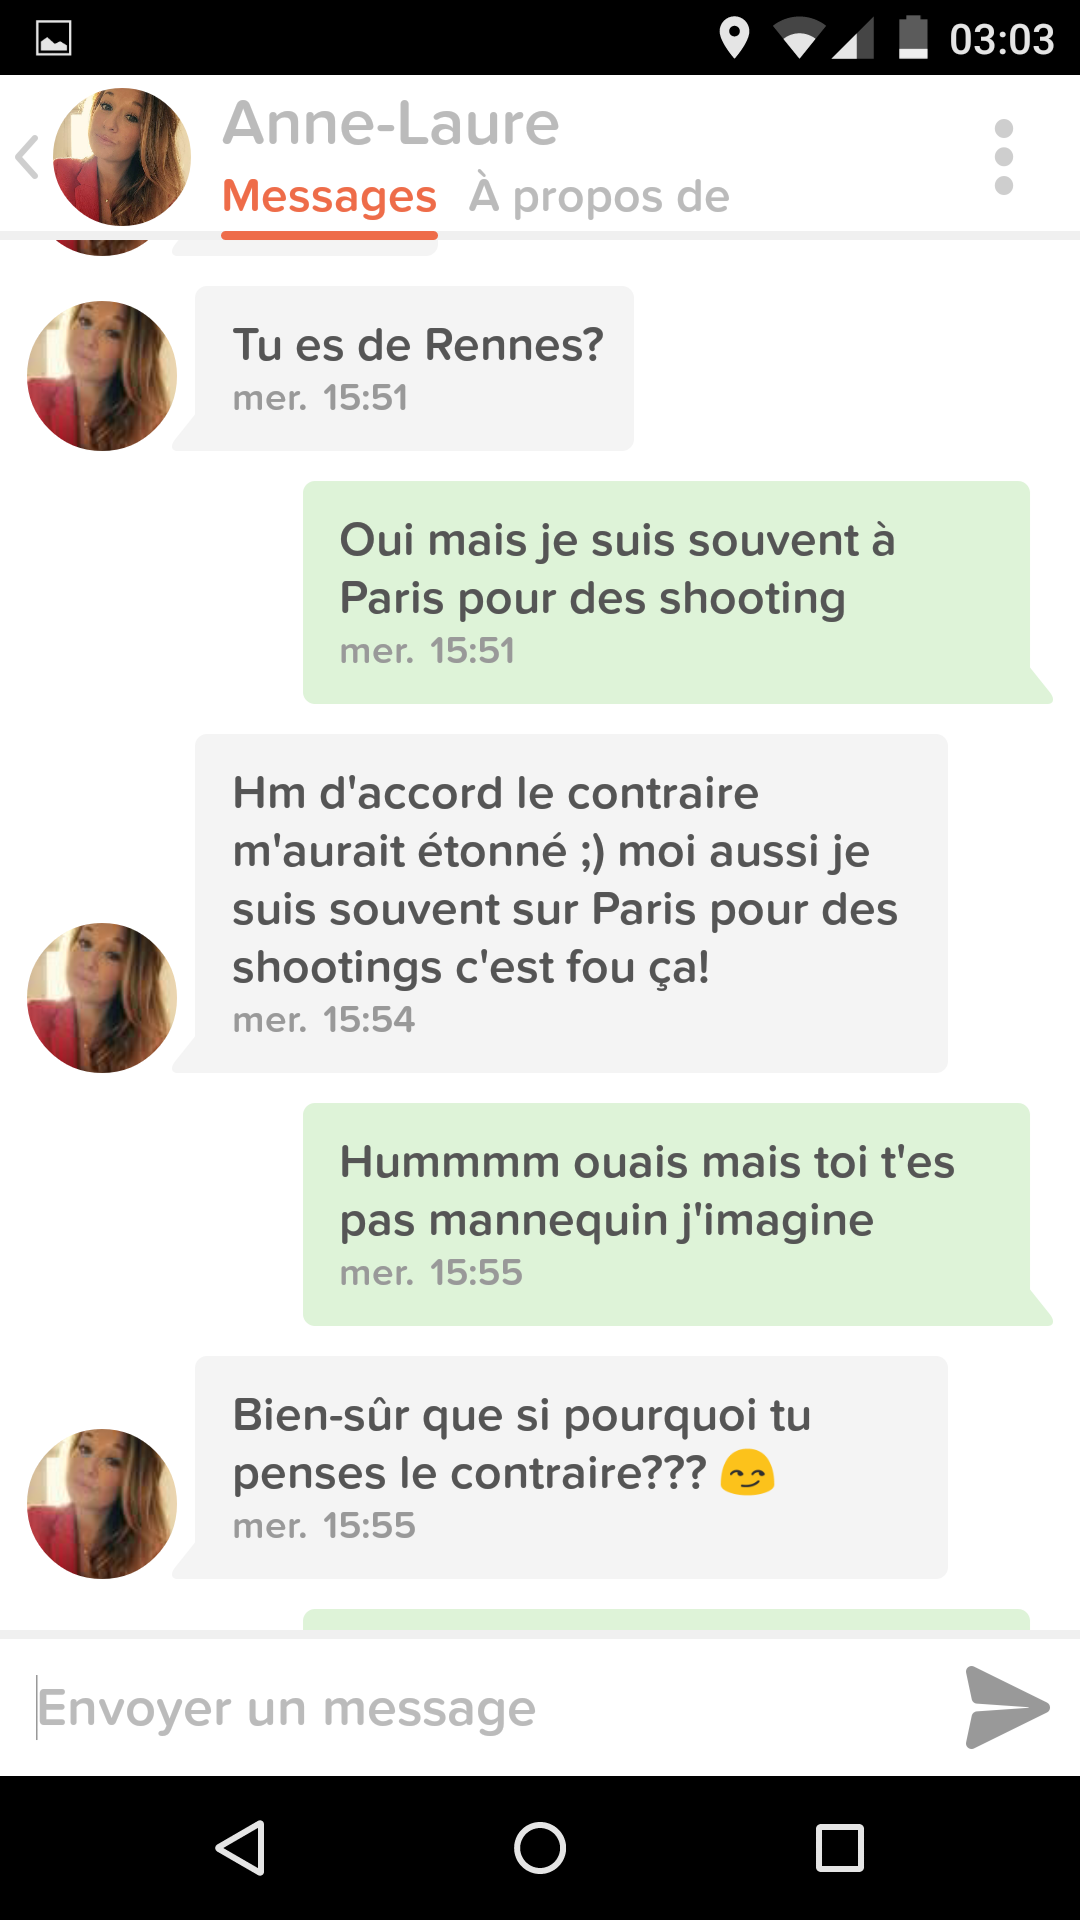 1429838759-anne-laure-3.png